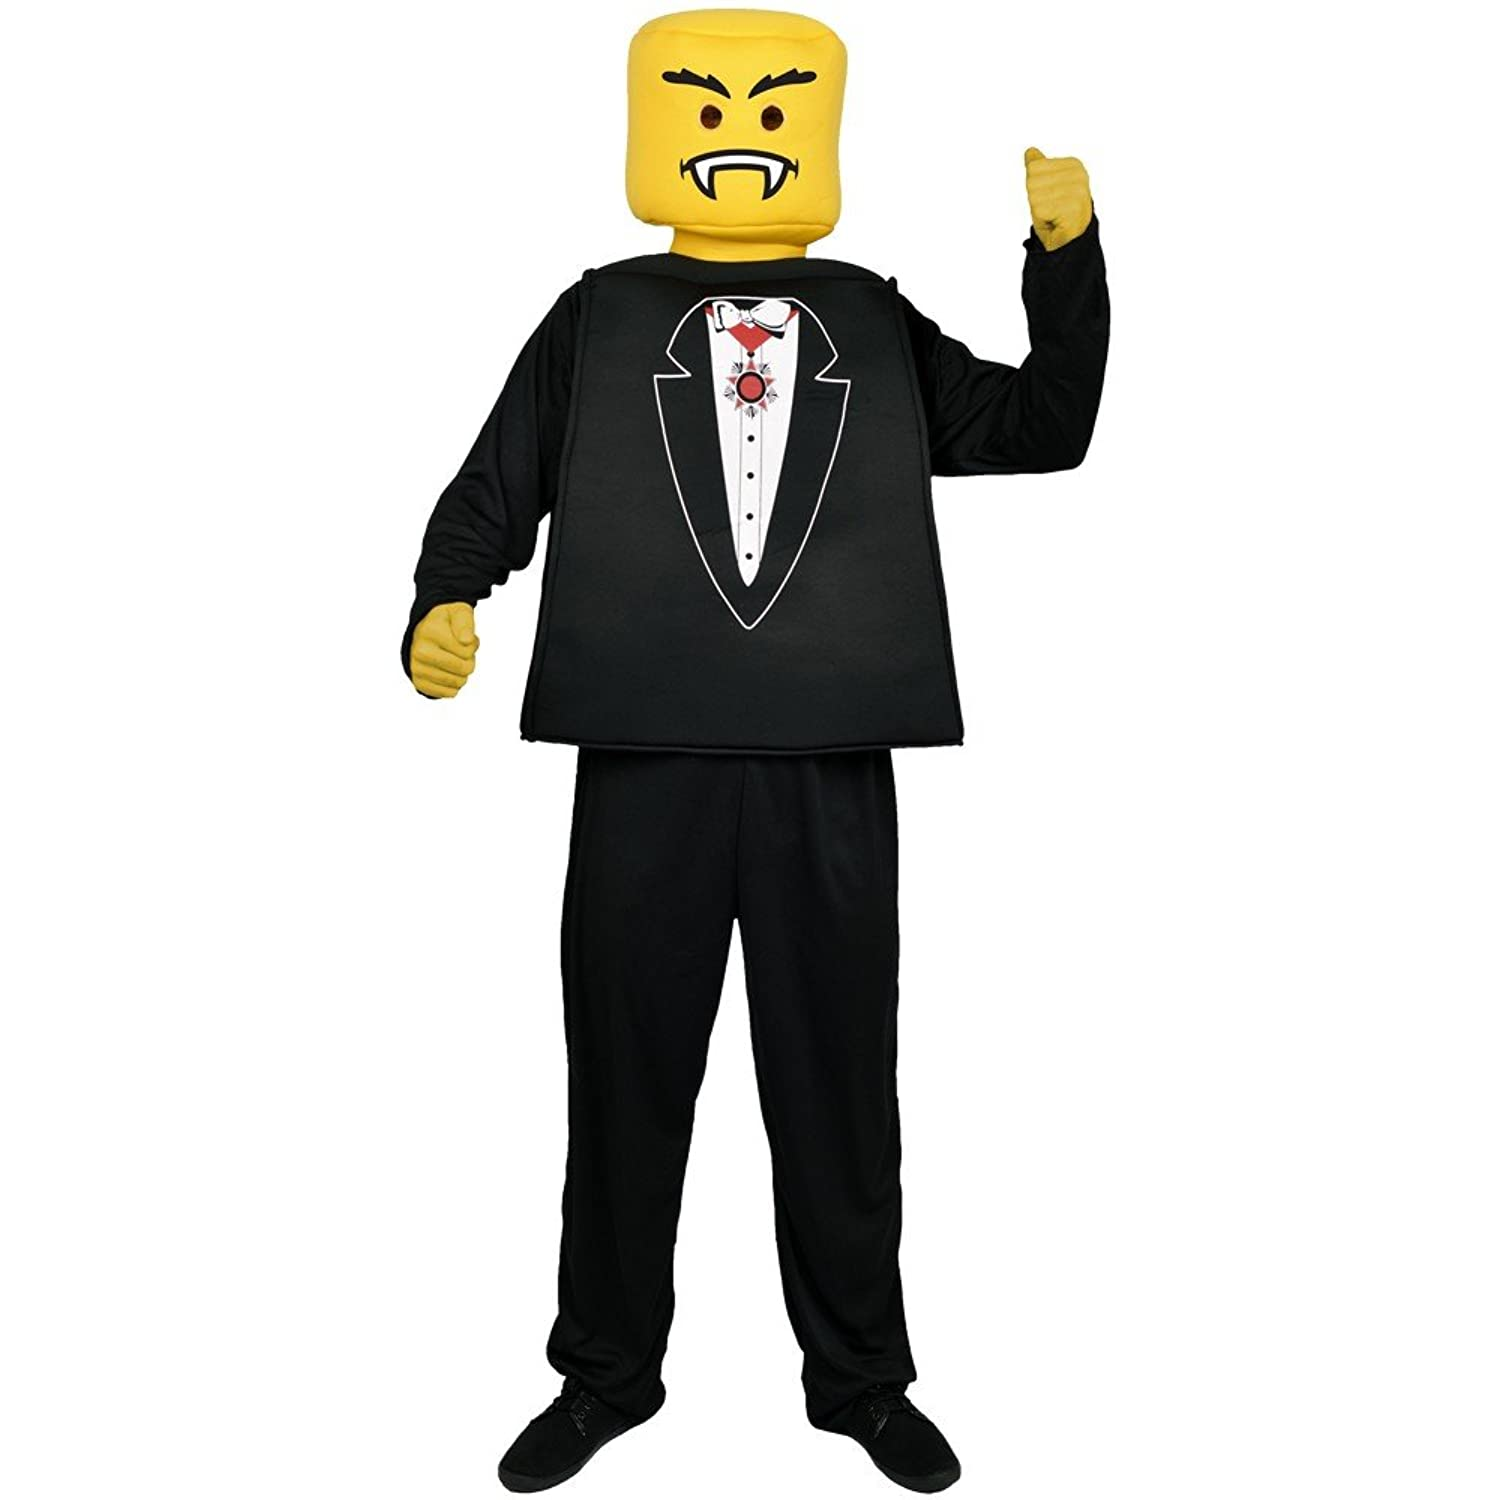 Amazon.com Morphsuits Menu0027s Morphcostume Co Mr. Block Head V&ire Tux Unisex Costume Yellow/Black One Size Clothing  sc 1 st  Amazon.com & Amazon.com: Morphsuits Menu0027s Morphcostume Co Mr. Block Head Vampire ...